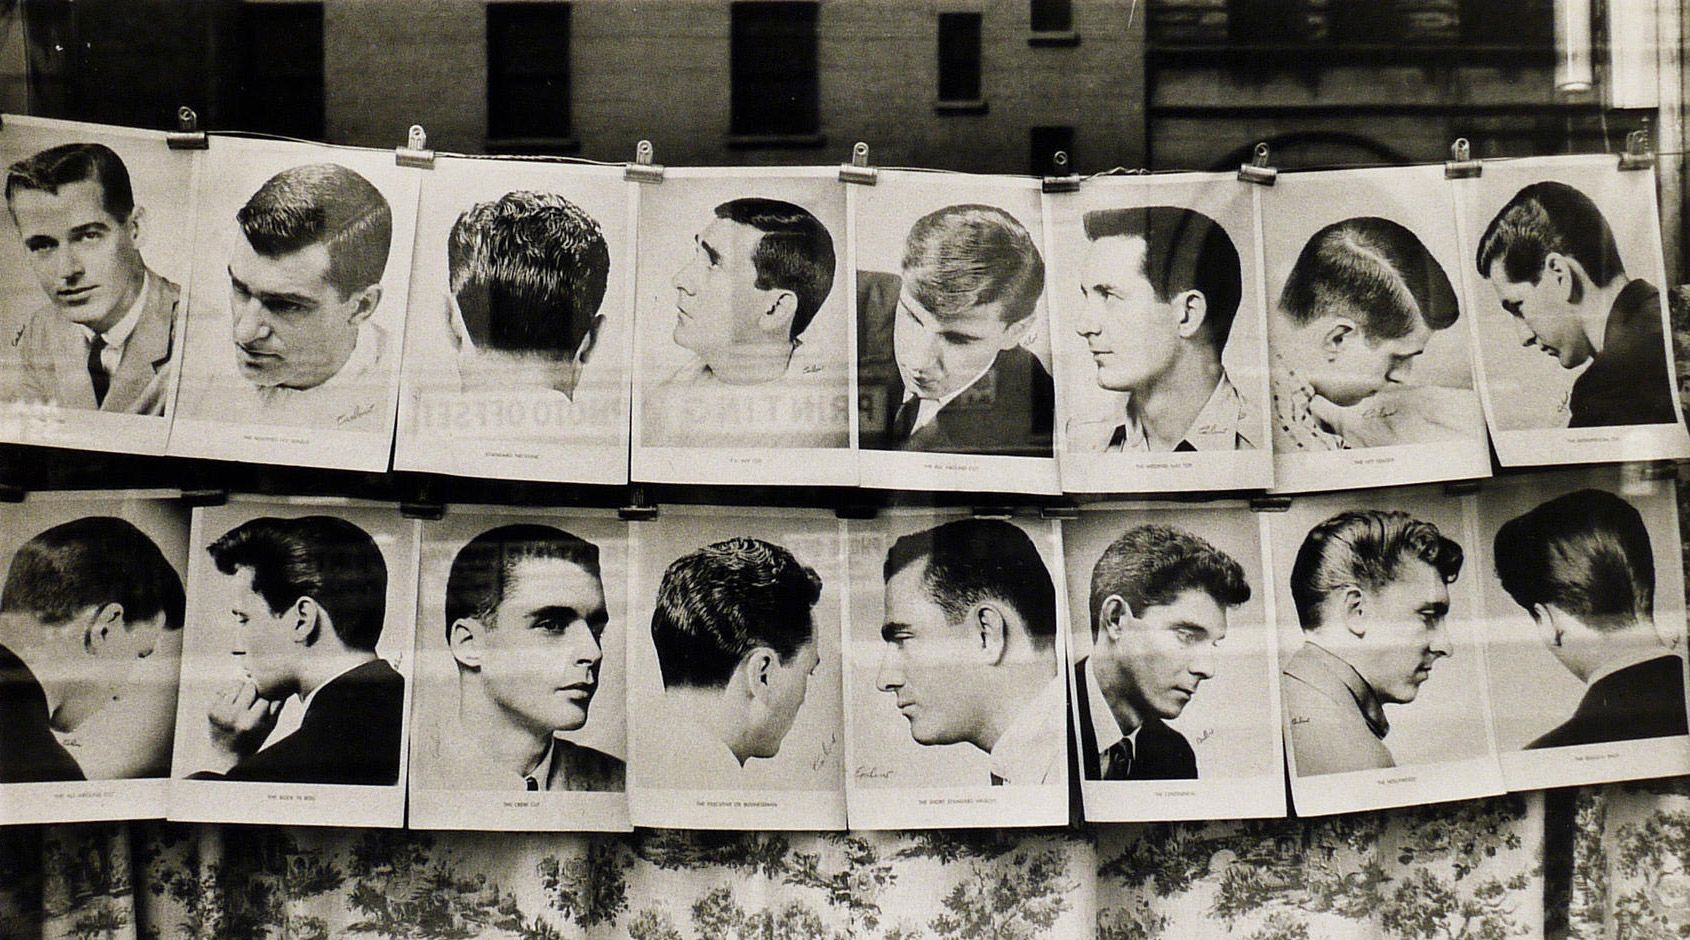 The photographer Duane Michals talks to Siobhan Bohnacker about his early work, and about his dream-like portraits of Marcel Duchamp, René Magritte, and Andy Warhol.